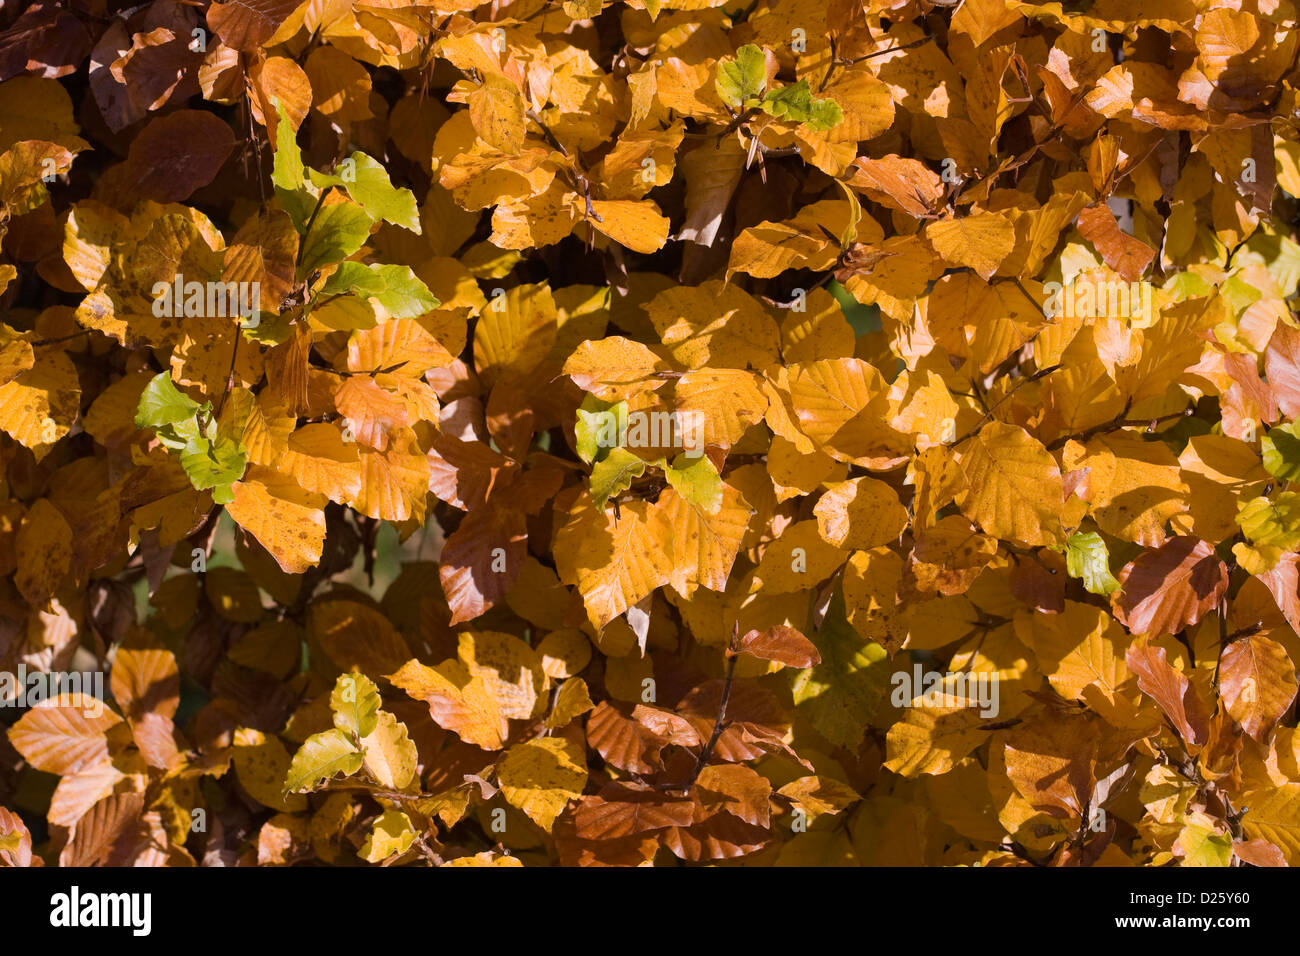 Fagus sylvatica in Autumn. Common Beech hedging. - Stock Image